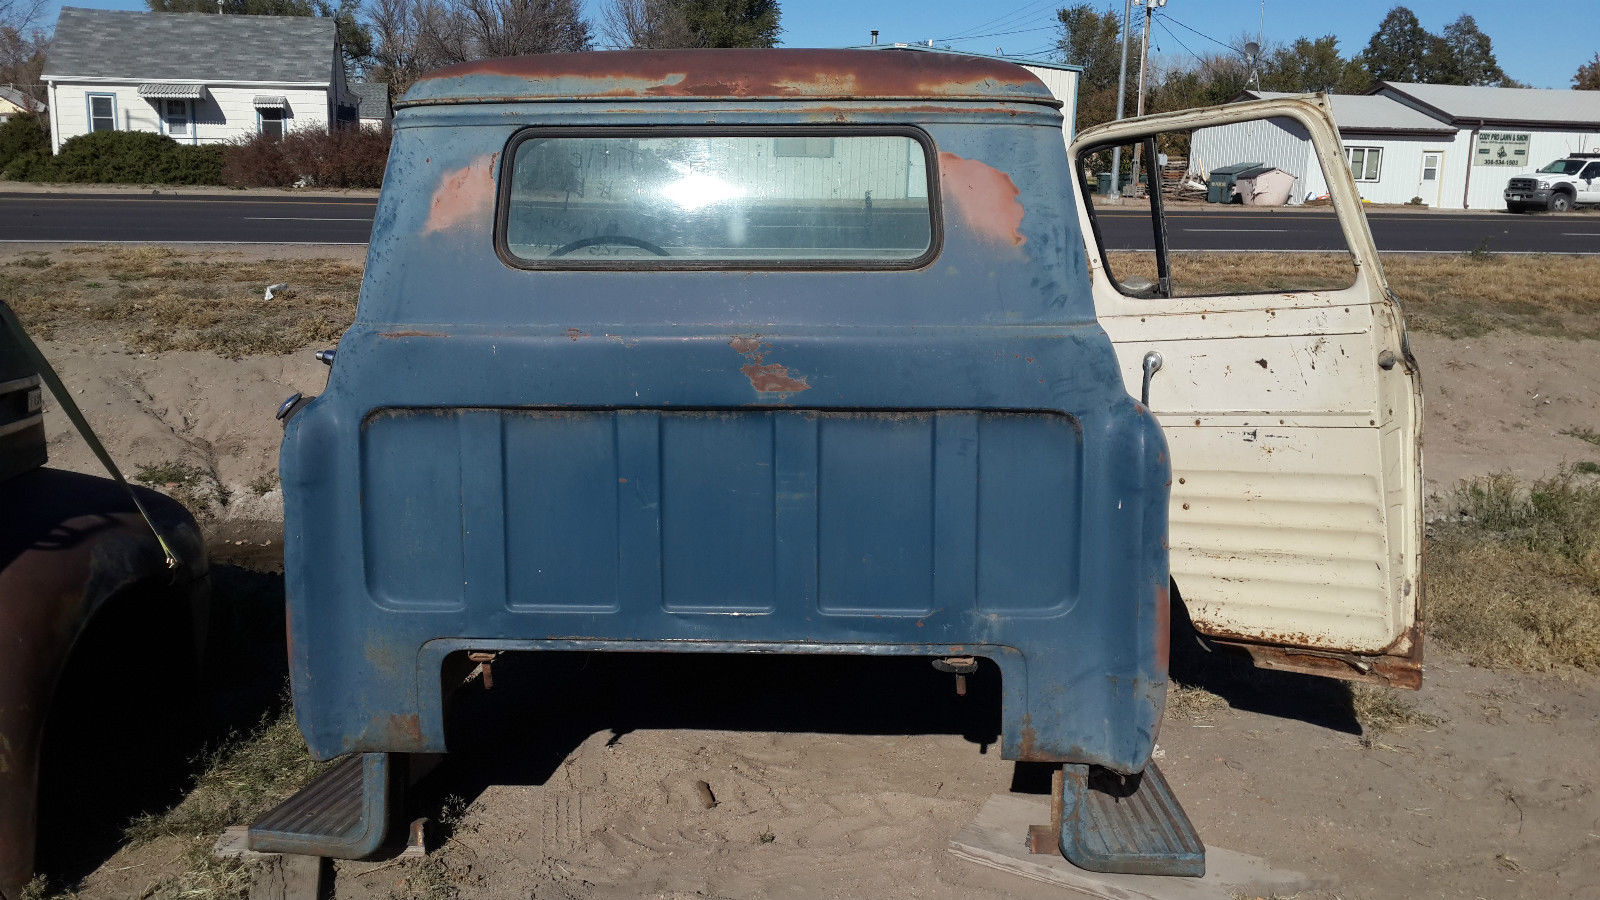 1955 Chevy 5100 2 Ton Truck Cab Almost Complete With Title 1957 Apache For Sale Prevnext